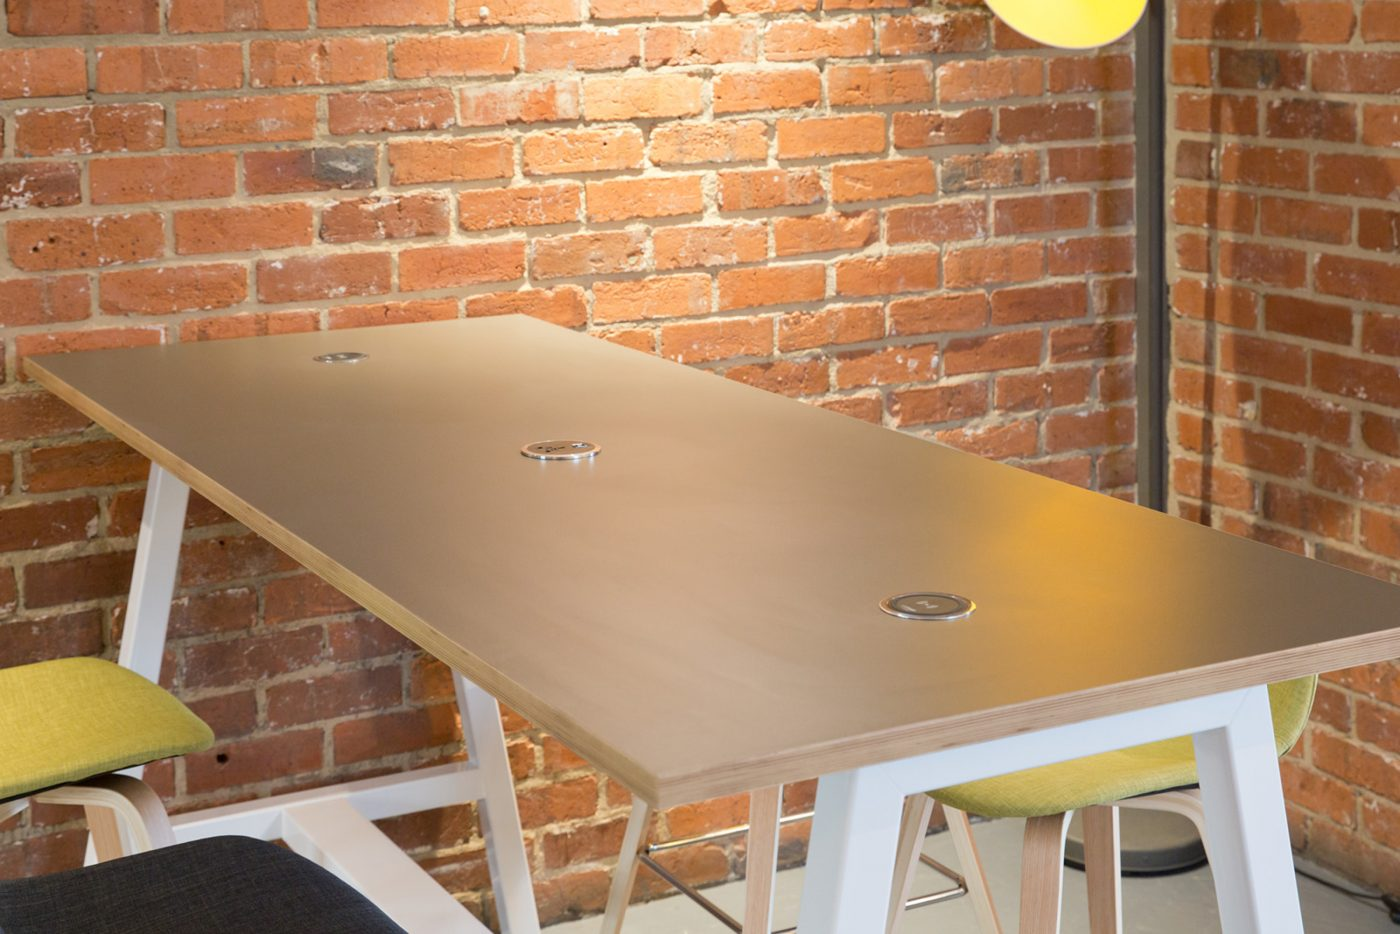 breakout table, collaborative table, integrated power, wireless charger, silver table, ply edging, contrasting edging, white frame